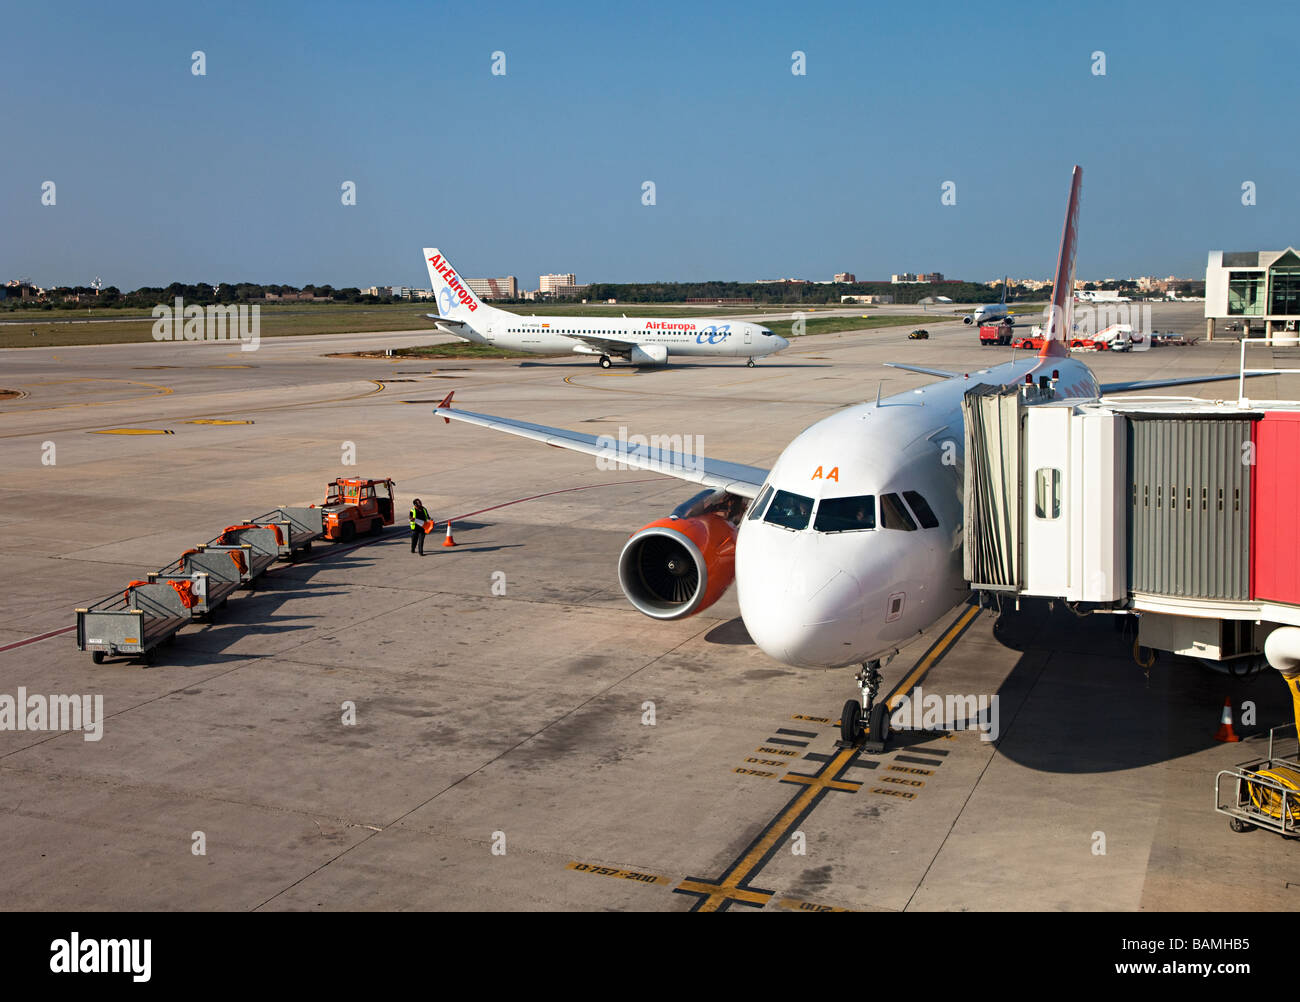 Easyjet aircraft at terminal with ground crew in attendance Palma airport Mallorca Spain - Stock Image